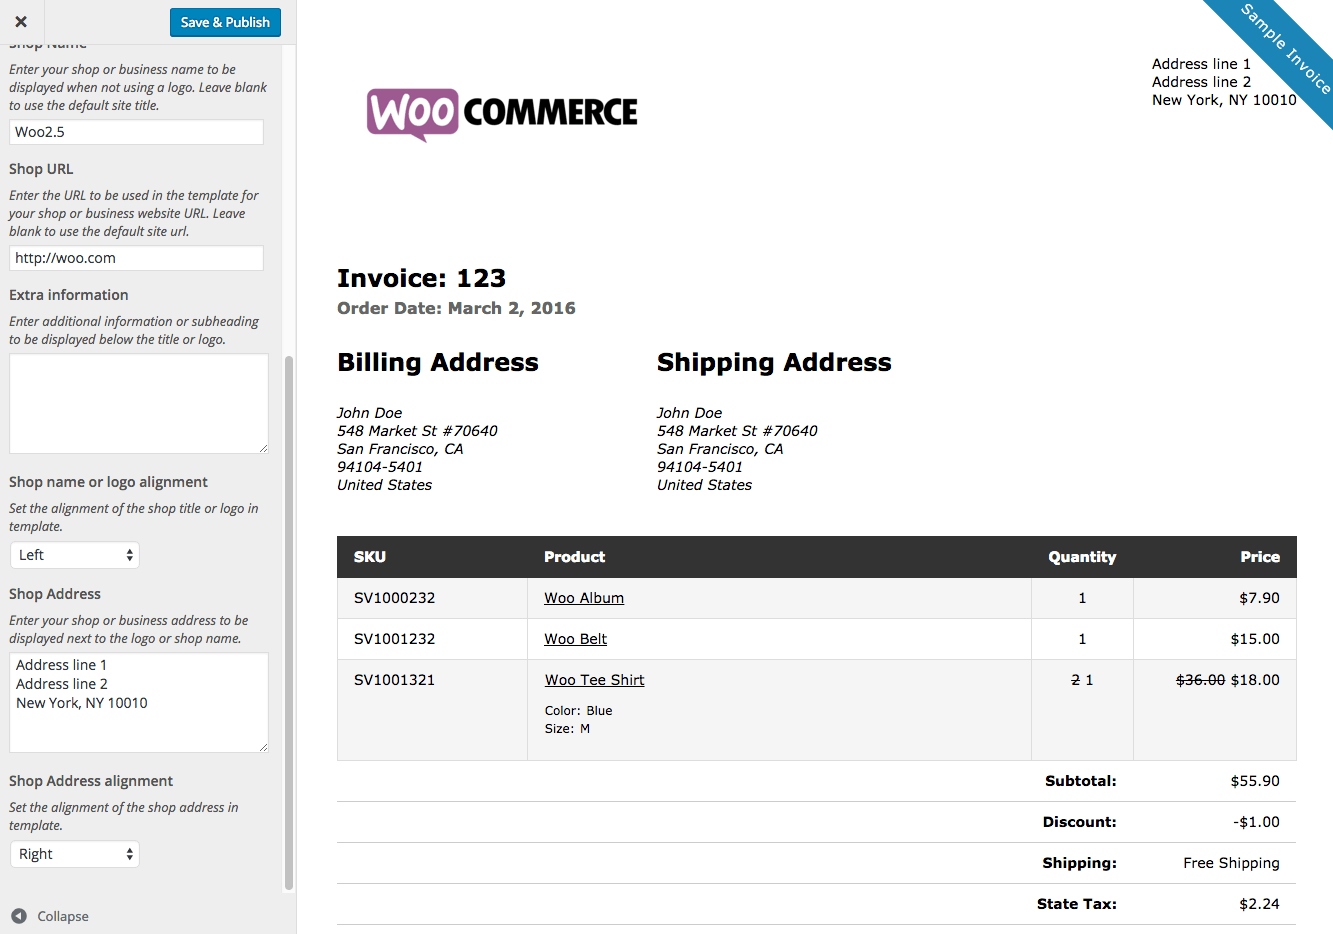 Centralasianshepherdus  Ravishing Woocommerce Print Invoices Amp Packing Lists  Woocommerce Docs With Excellent Woocommerce Print Invoices  Packing Lists Customizer With Attractive Pancake Receipt Also Purchase Receipts In Addition Walmart Online Receipt And Babies R Us Returns Without Receipt As Well As Best Buy Online Receipt Additionally Irs Audit No Receipts From Docswoocommercecom With Centralasianshepherdus  Excellent Woocommerce Print Invoices Amp Packing Lists  Woocommerce Docs With Attractive Woocommerce Print Invoices  Packing Lists Customizer And Ravishing Pancake Receipt Also Purchase Receipts In Addition Walmart Online Receipt From Docswoocommercecom